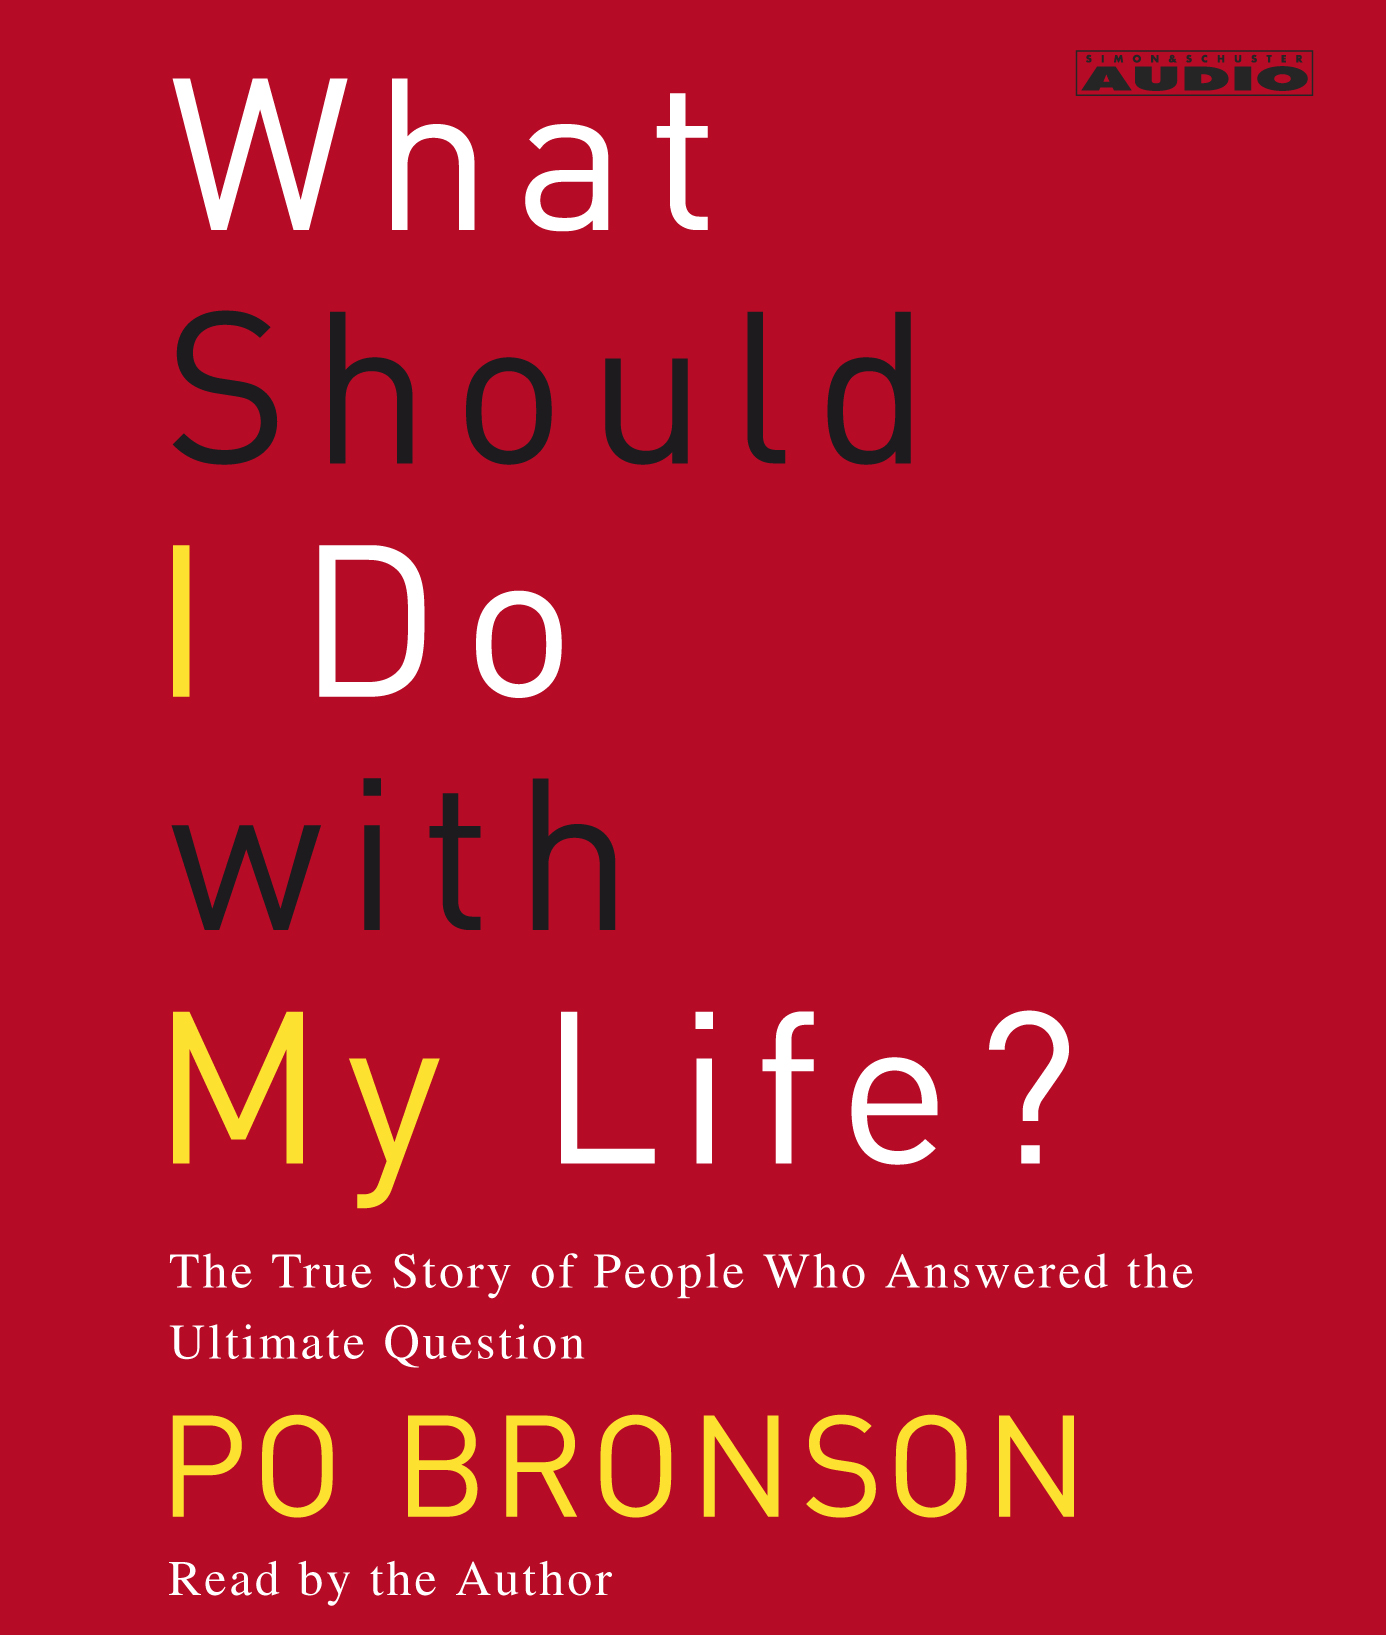 What Should I Do With My Life Audiobook by Po Bronson  Official Publisher Page  Simon  Schuster